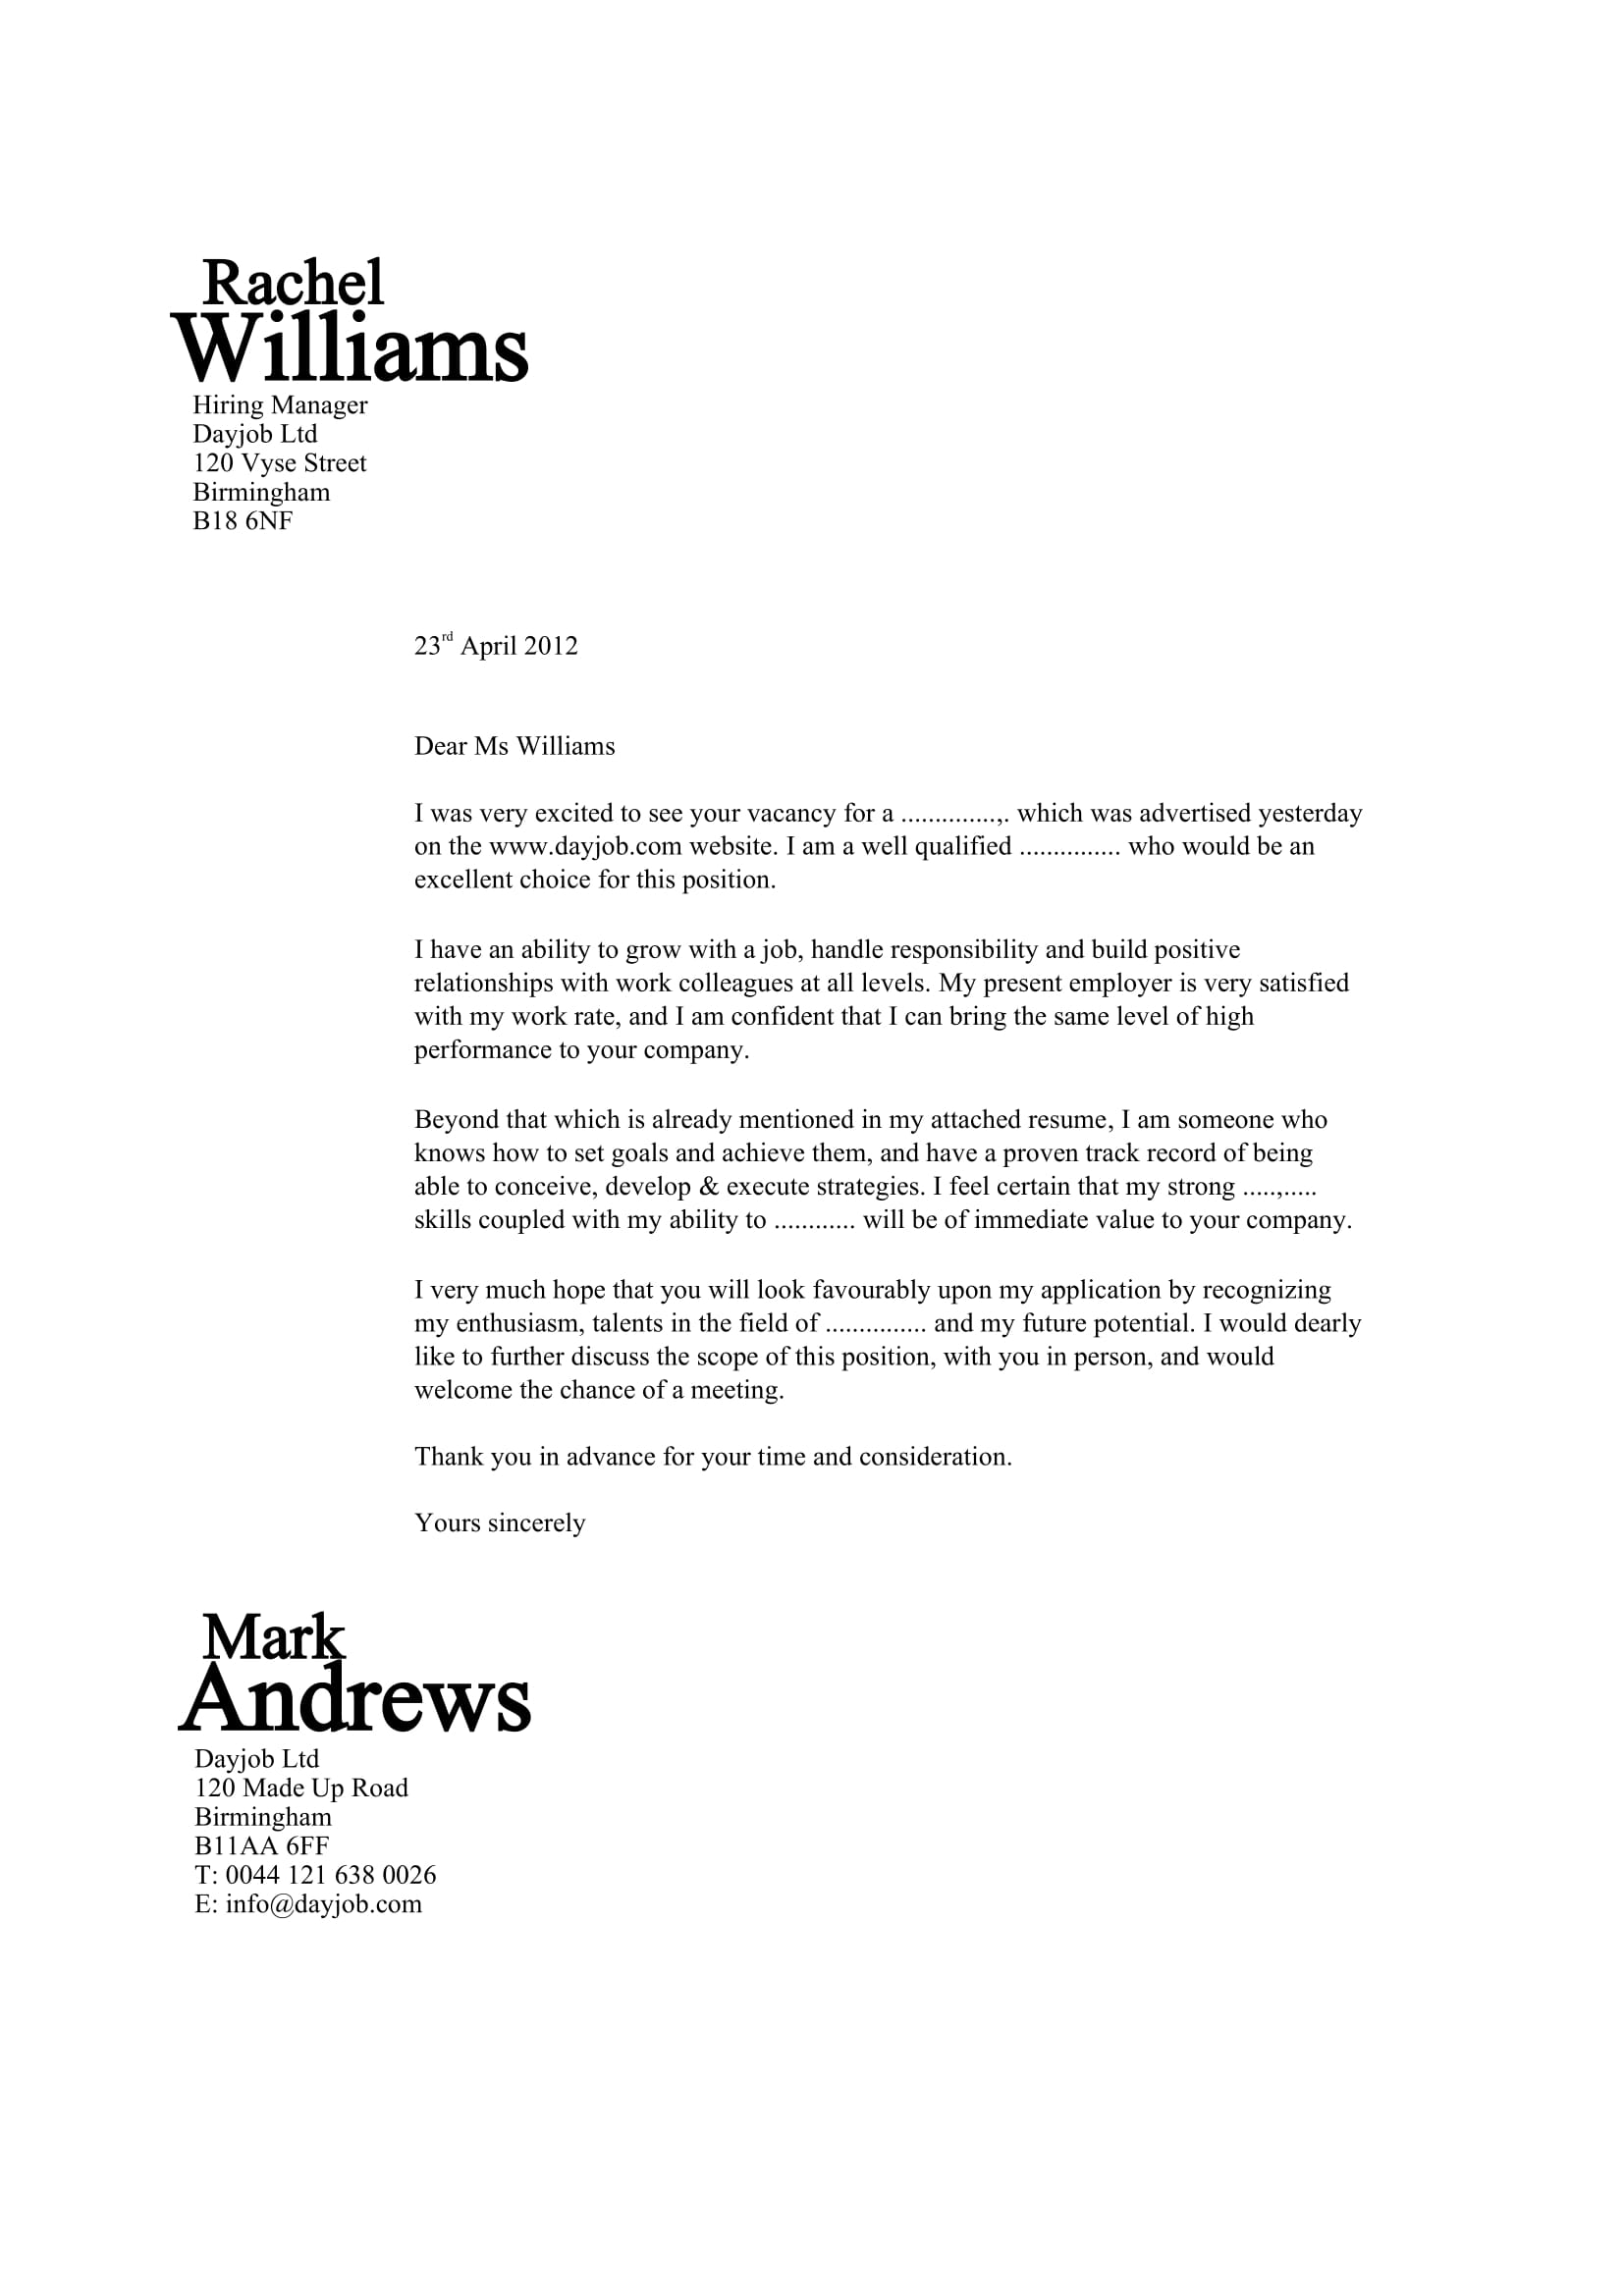 cover letter format sample